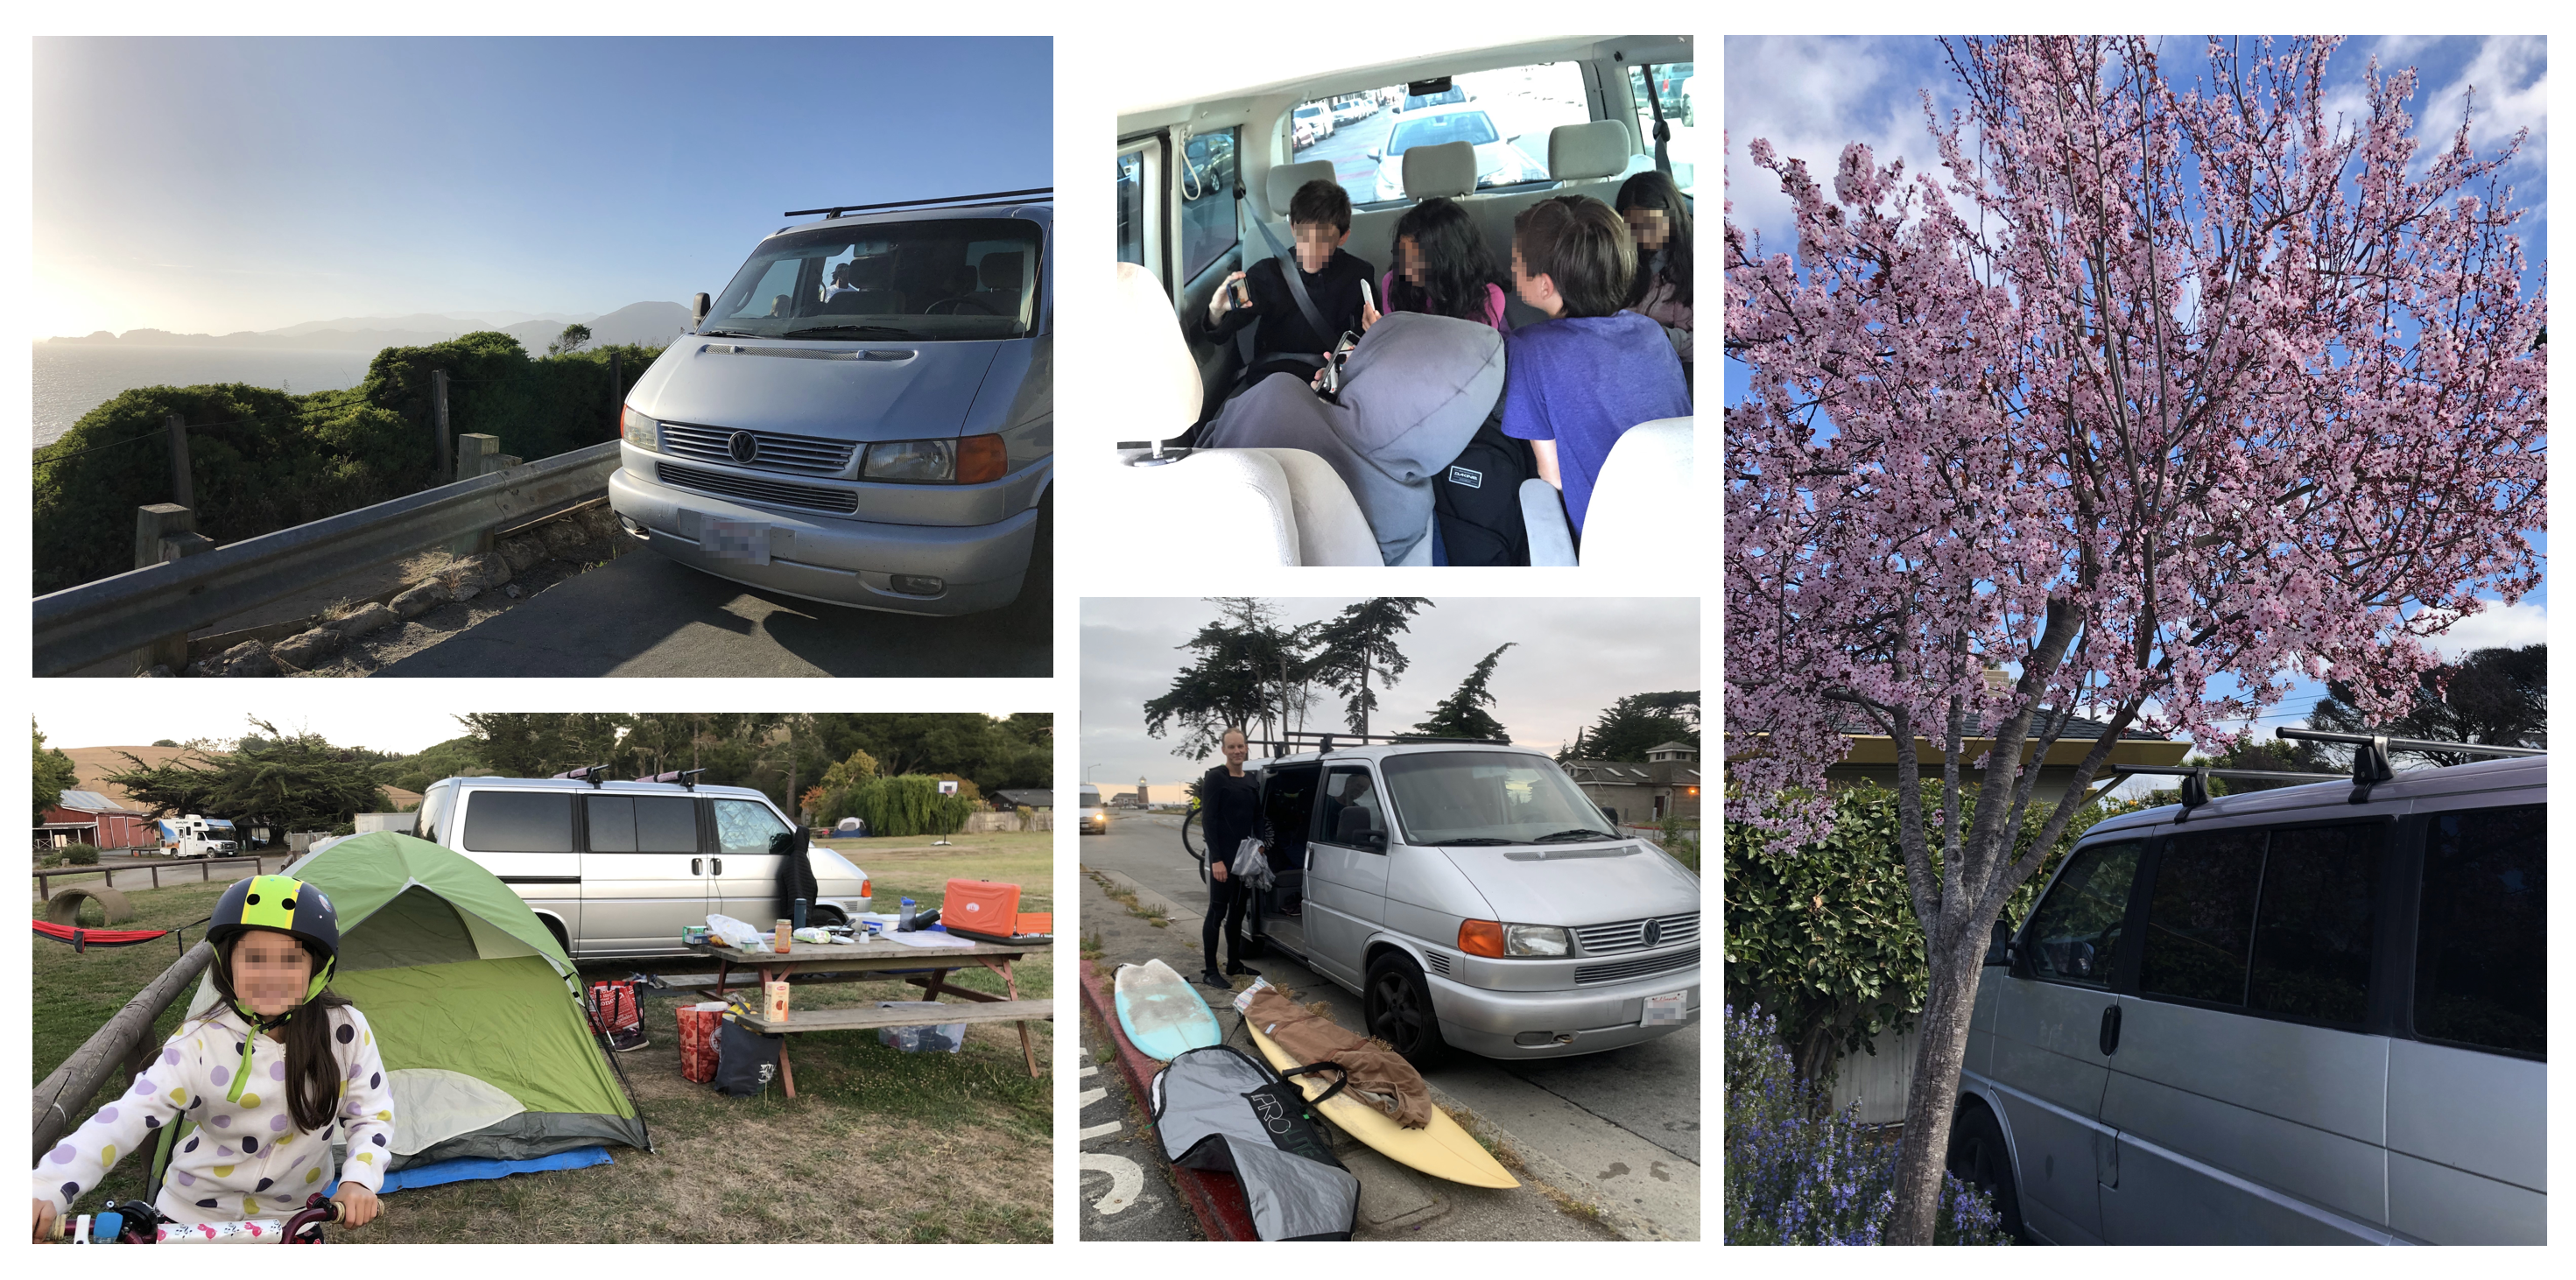 Montage of photos: Vanny at campgrounds, edge of cliff, with surfboards, and filled with kids.